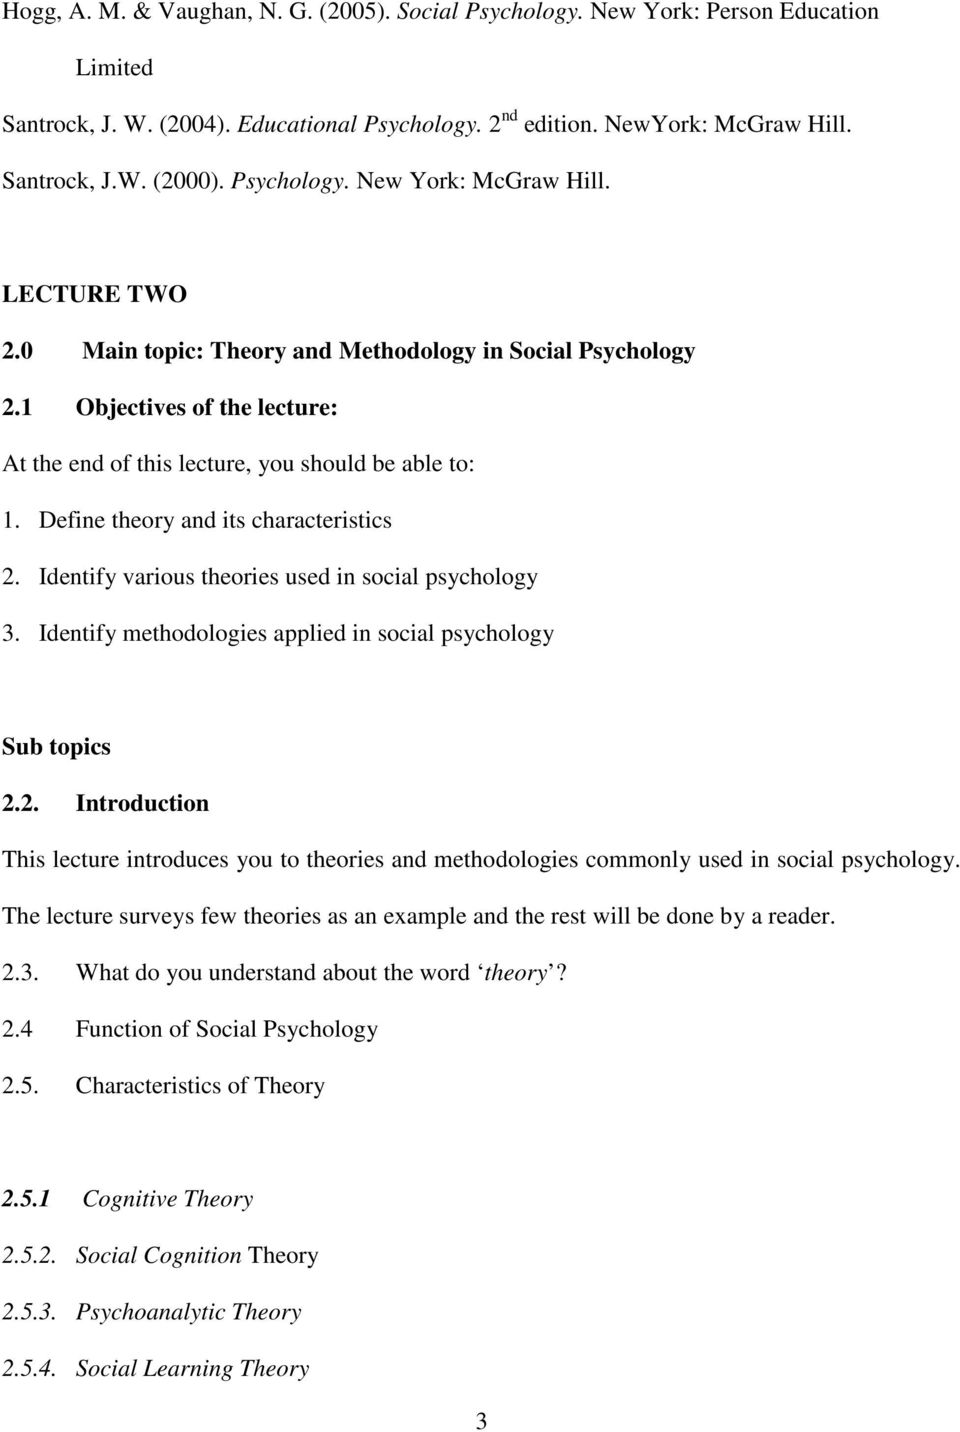 Define theory and its characteristics 2. Identify various theories used in social psychology 3. Identify methodologies applied in social psychology Sub topics 2.2. Introduction This lecture introduces you to theories and methodologies commonly used in social psychology.